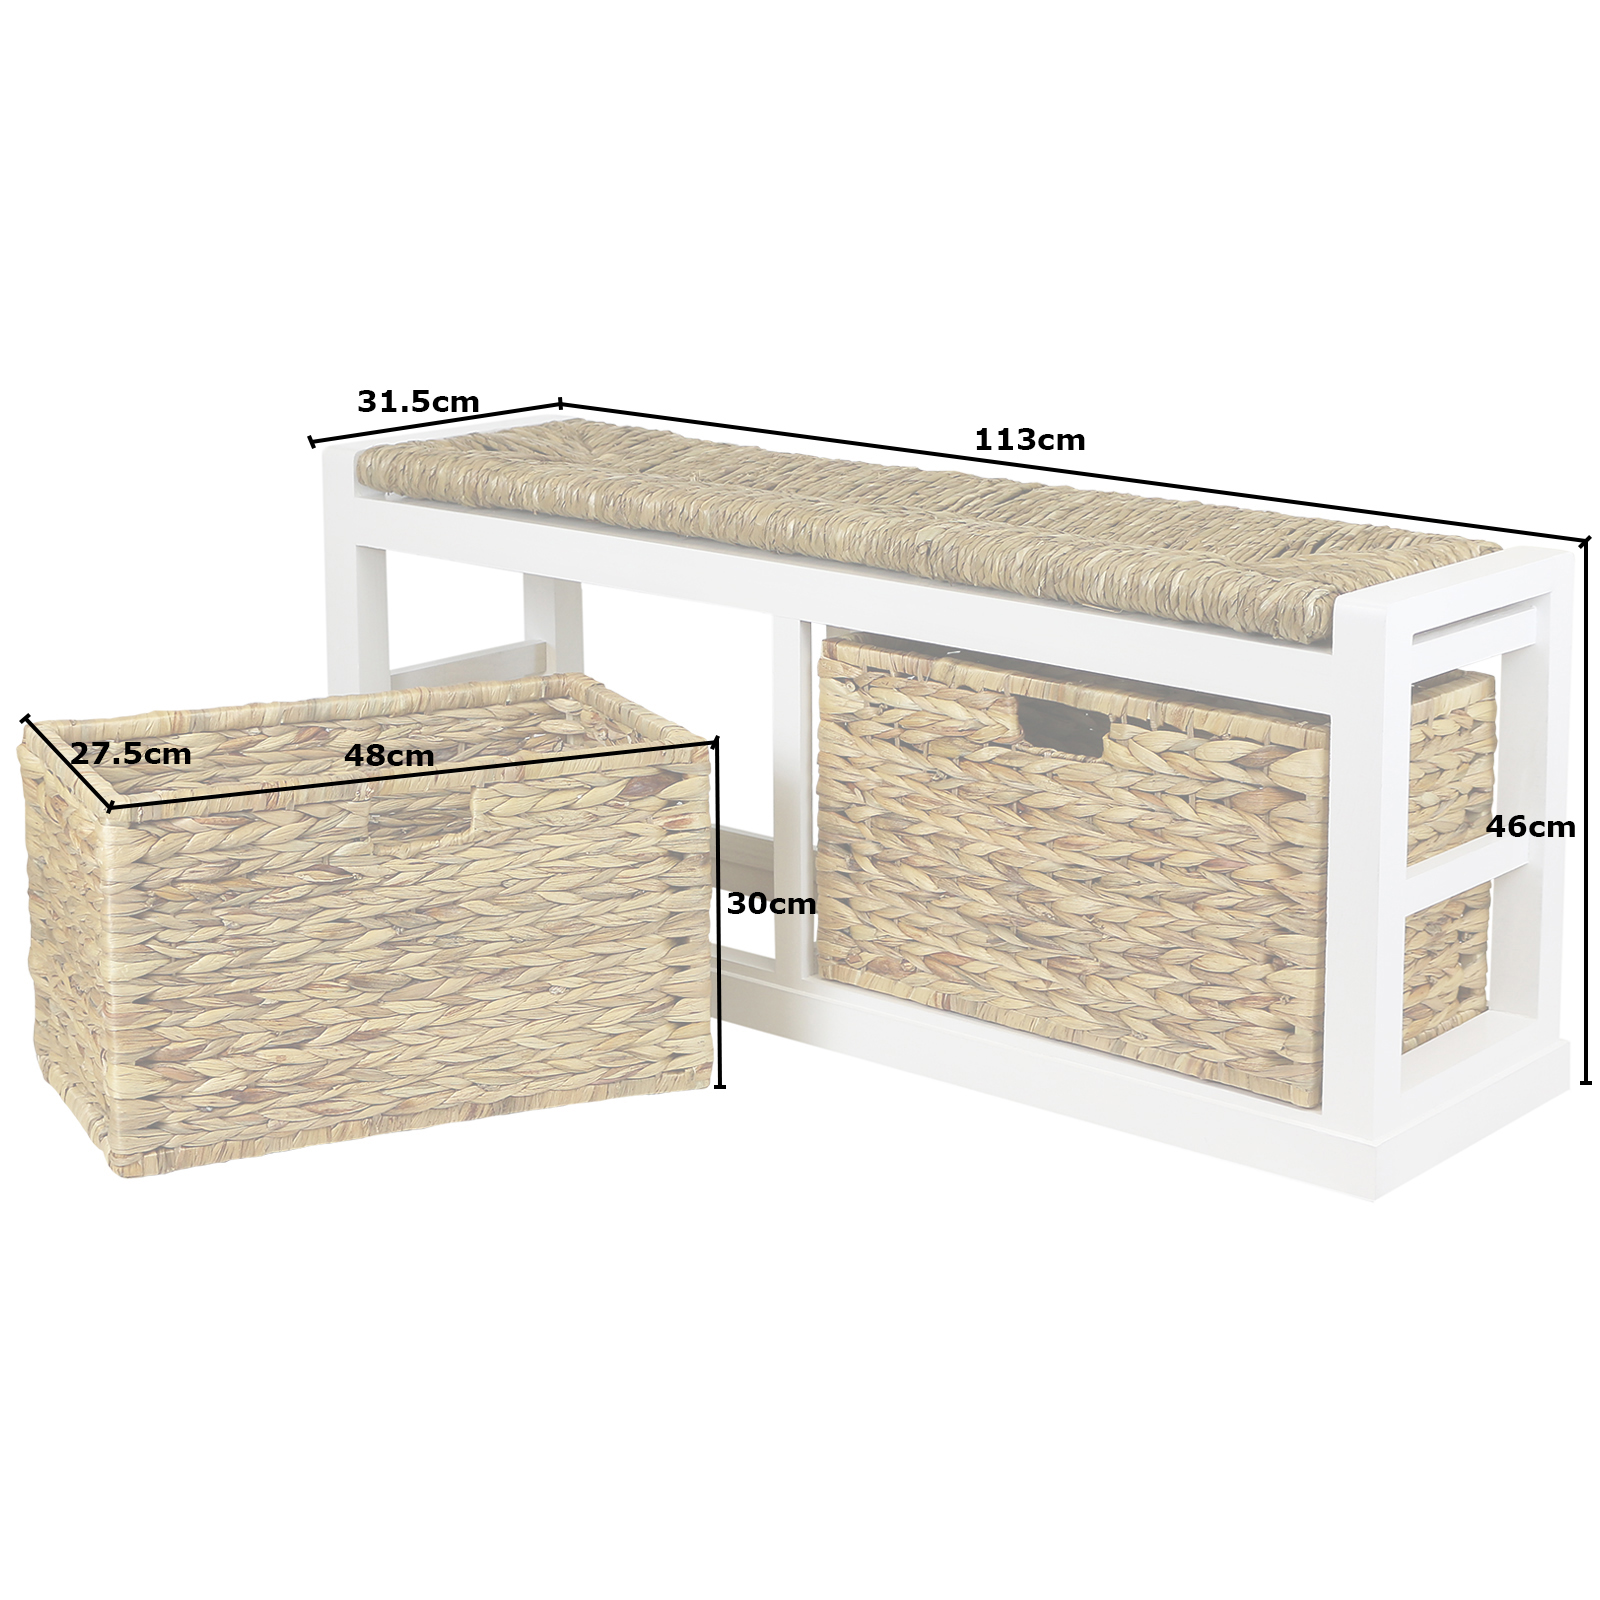 #816C4A  HARTLEYS WIDE 2 DRAWER BENCH WICKER SEAT CUSHION & BASKET DAMAGED #071 with 1600x1600 px of Recommended Wicker Storage Bench With Cushion 16001600 save image @ avoidforclosure.info